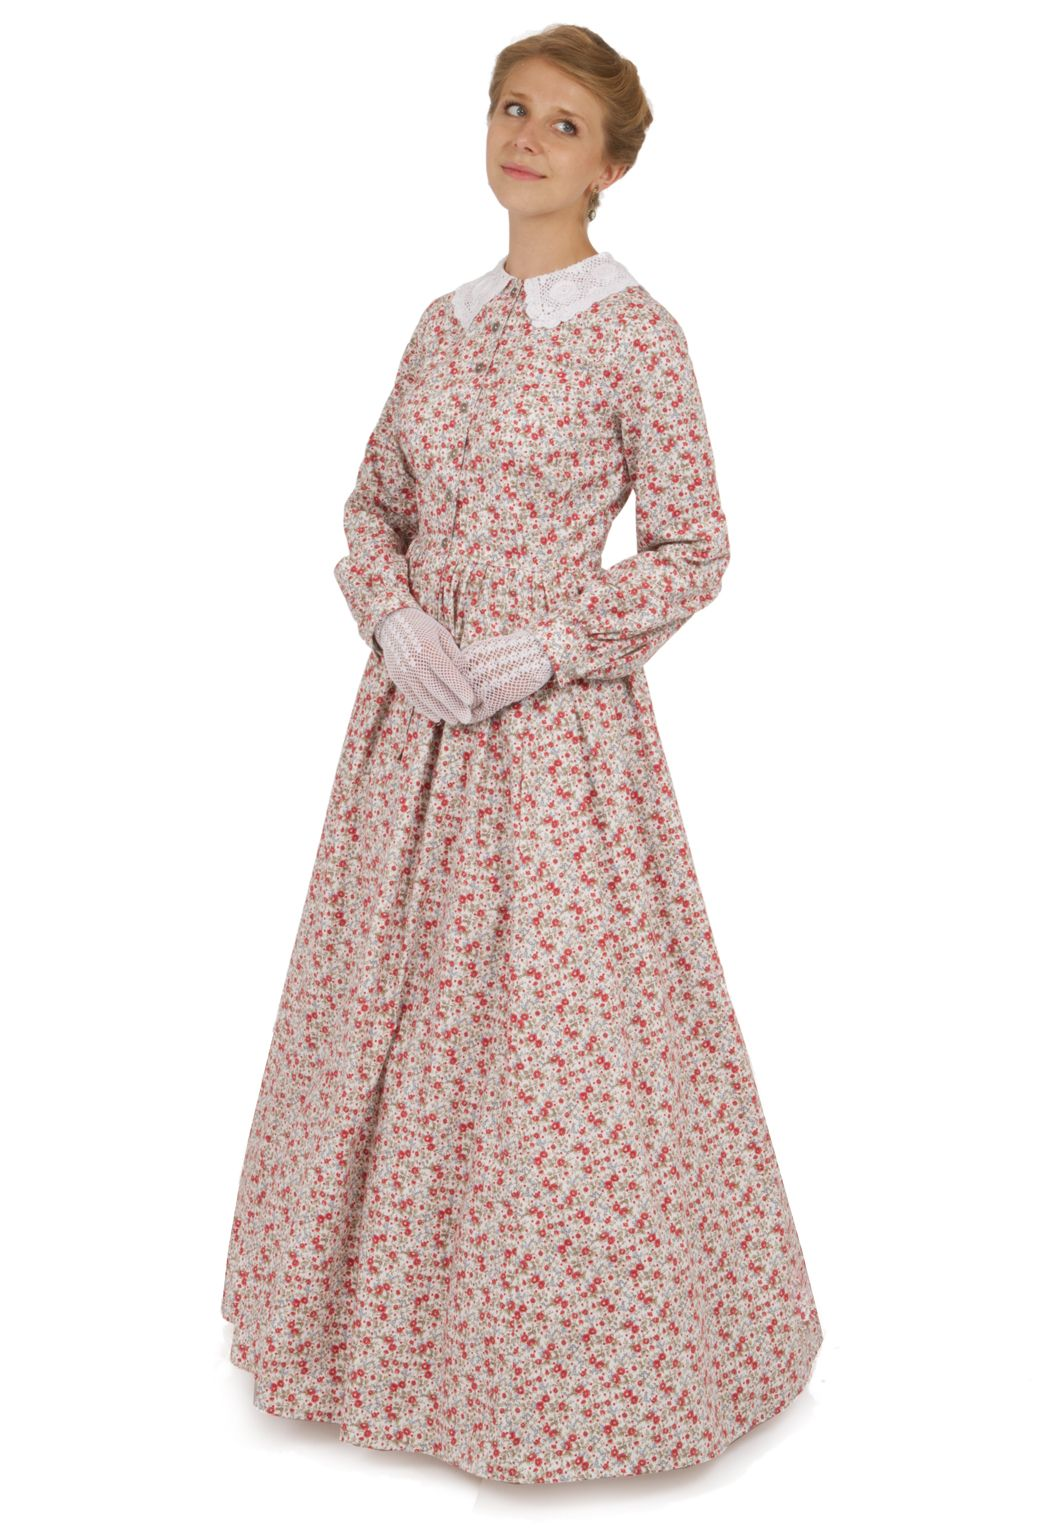 Victorian Pioneer Dress By Recollections | Dalton\'s | Pinterest